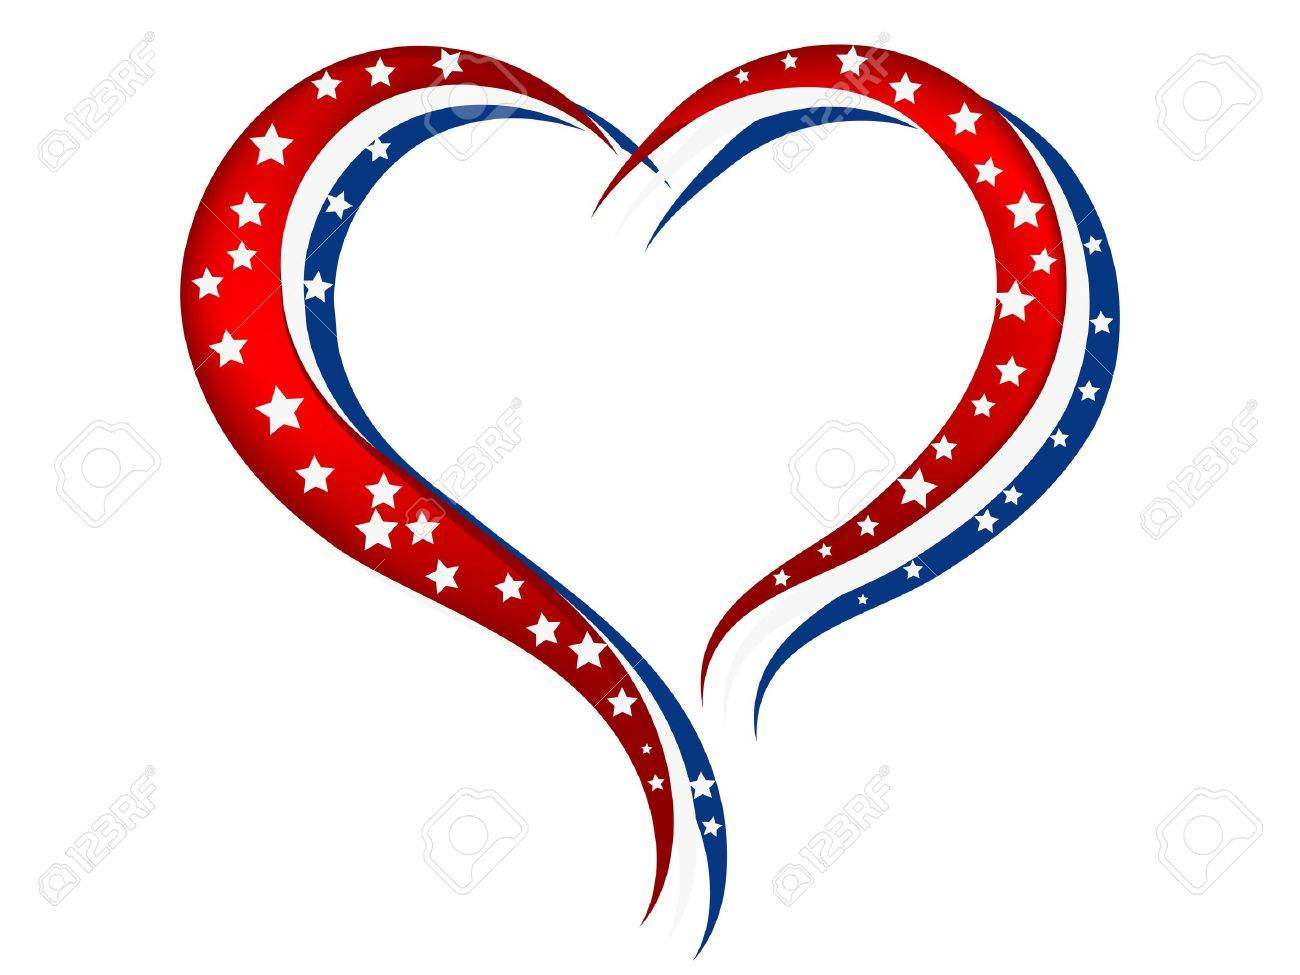 Red White And Blue Heart With White Stars Royalty Free Cliparts